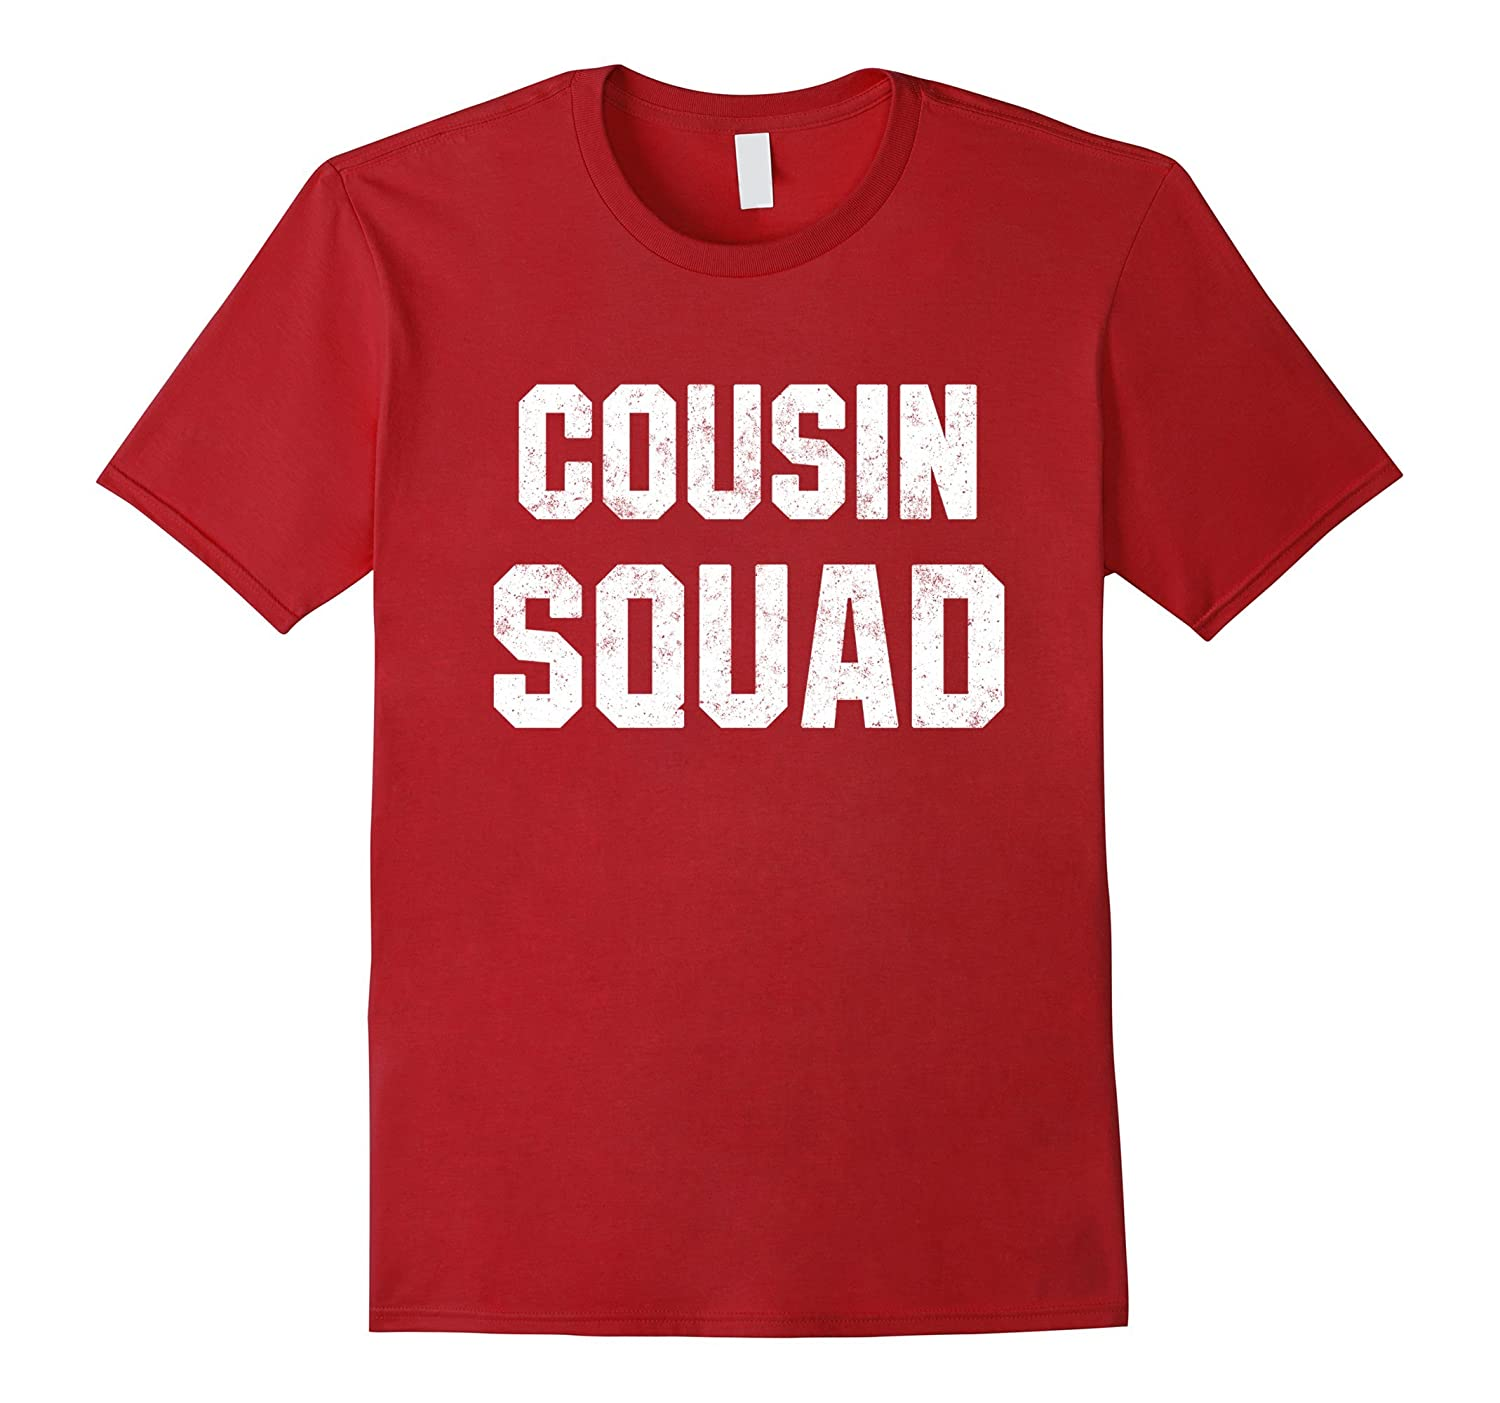 Cool Cousin Squad Tshirt for the Family Reunion-FL